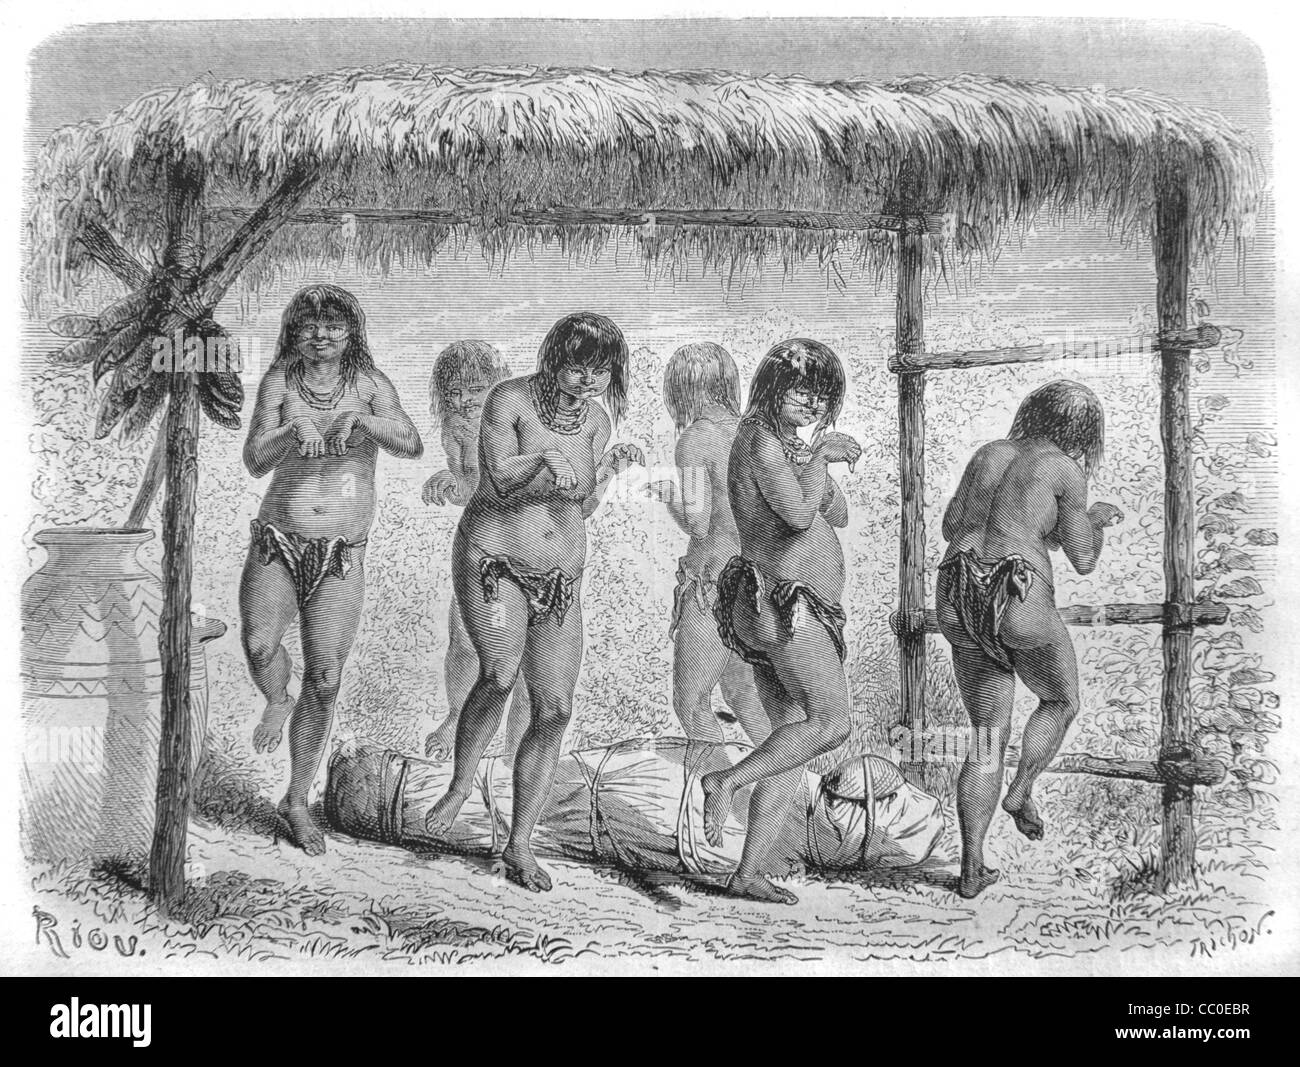 Funeral or Funerary Dance of Native American Indians or Indigenous Natives, Costa Rica, Central America, 1864 Engraving - Stock Image